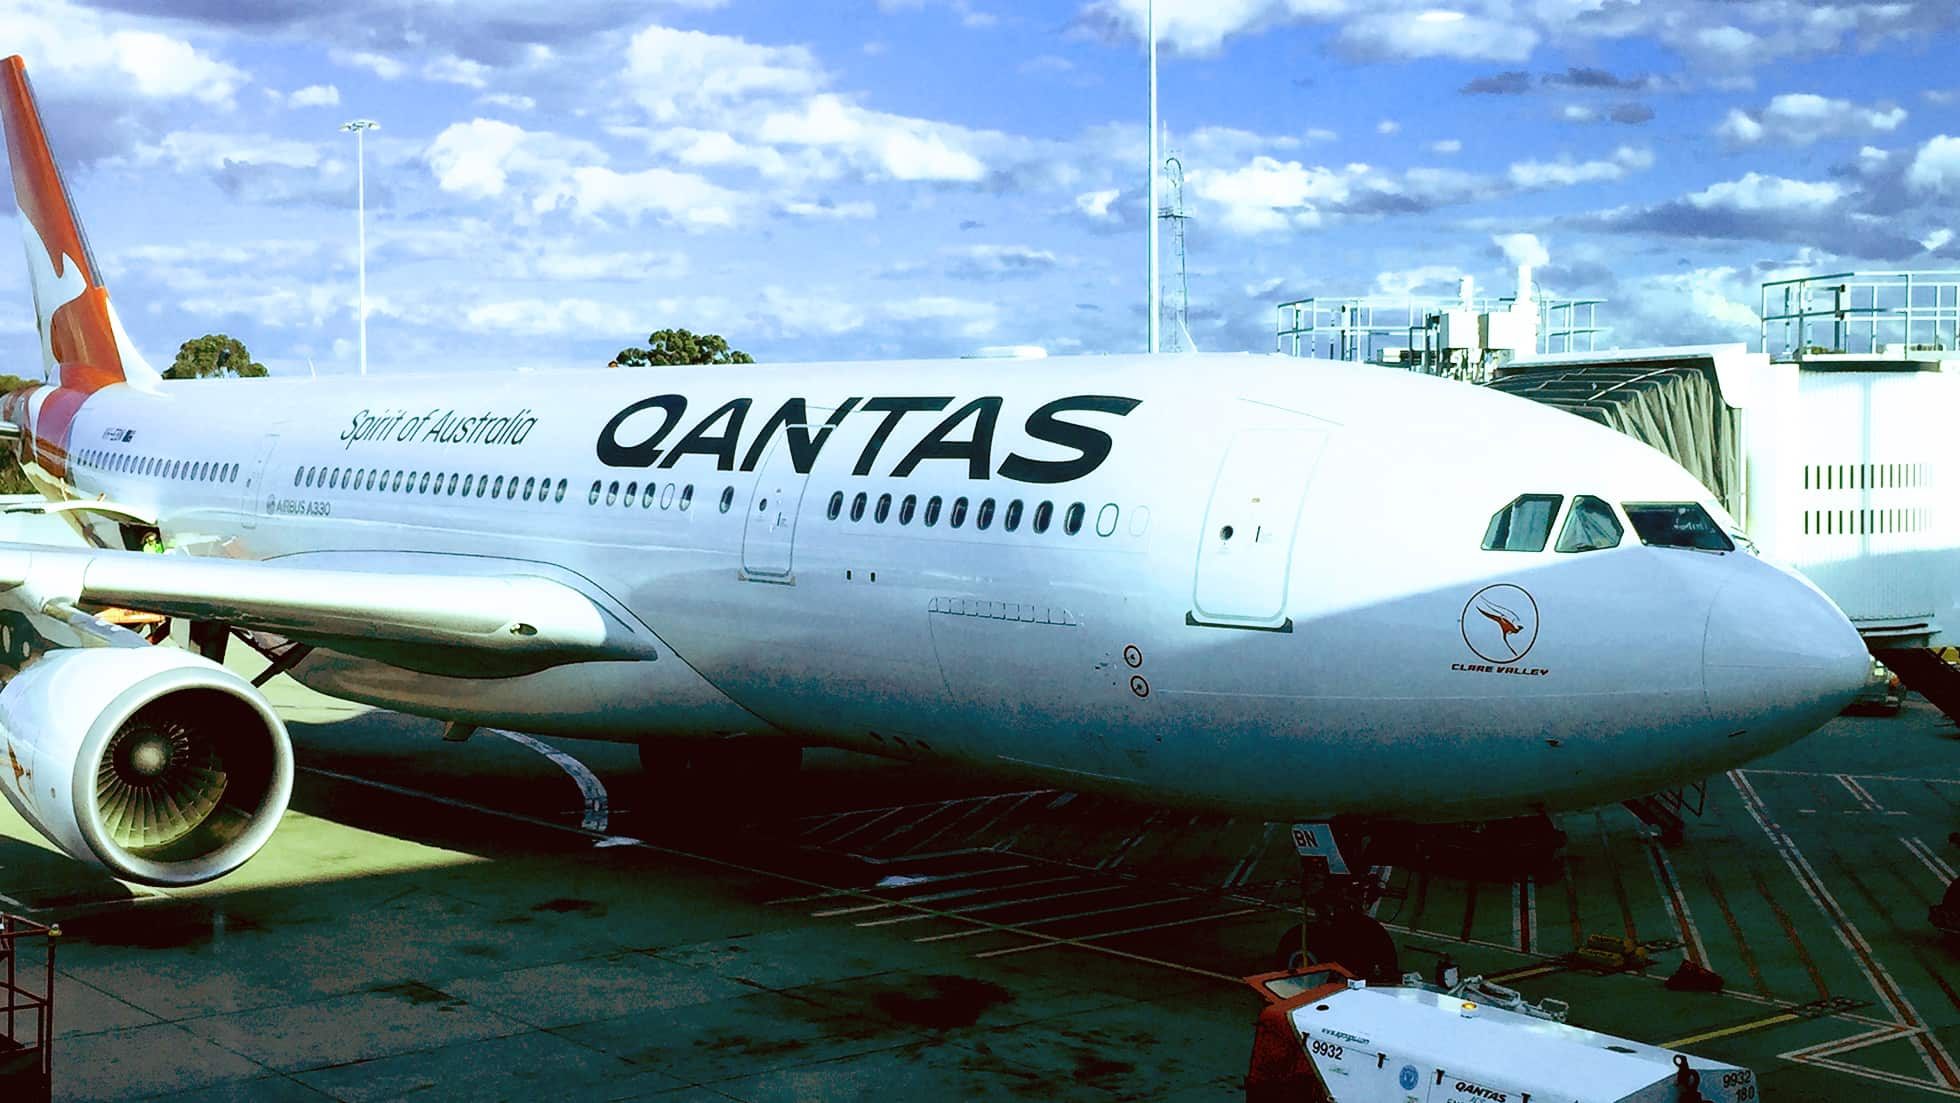 Qantas Melbourne to Perth Business Class Review